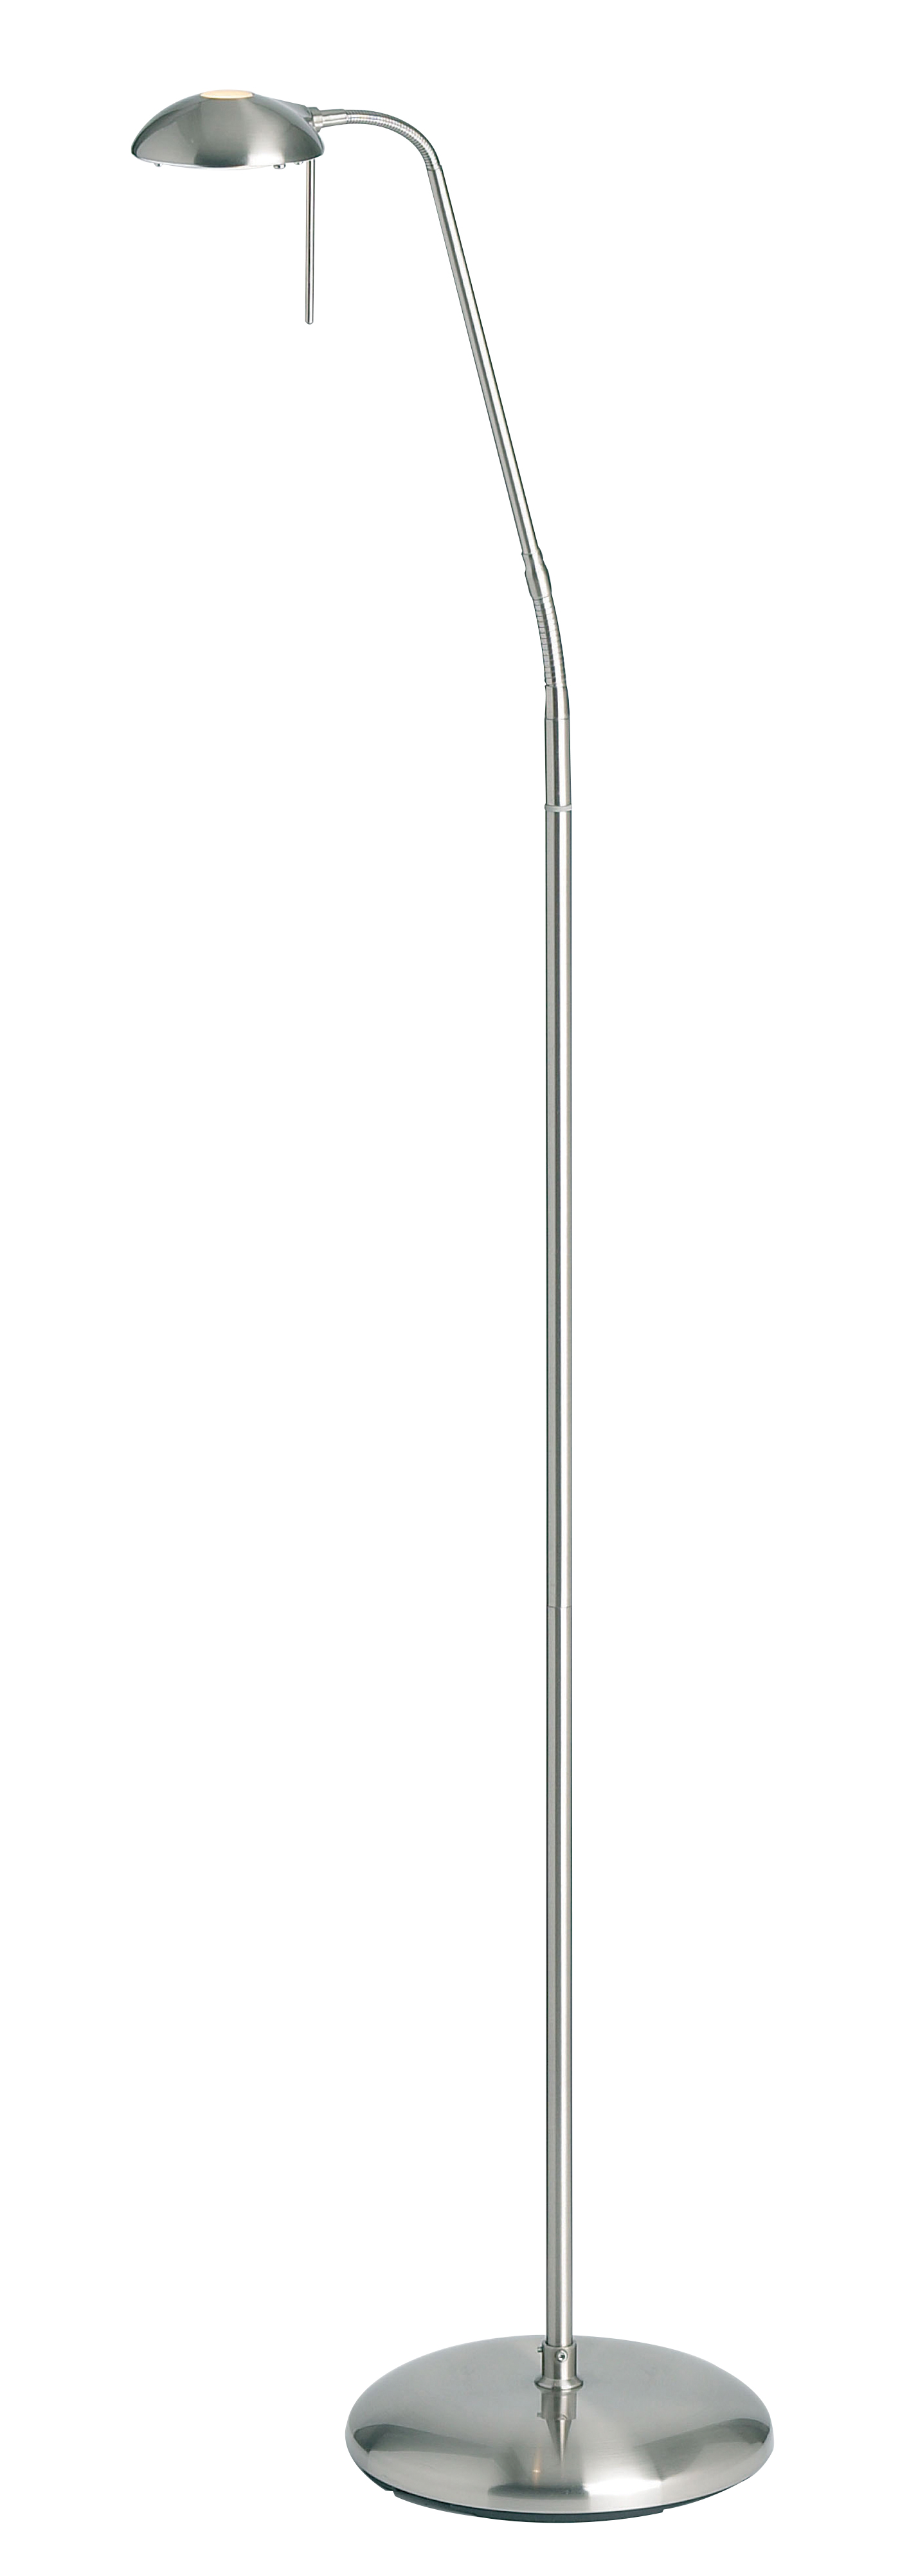 Endon Hackney touch task floor lamp 33W Satin chrome effect plate Thumbnail 1